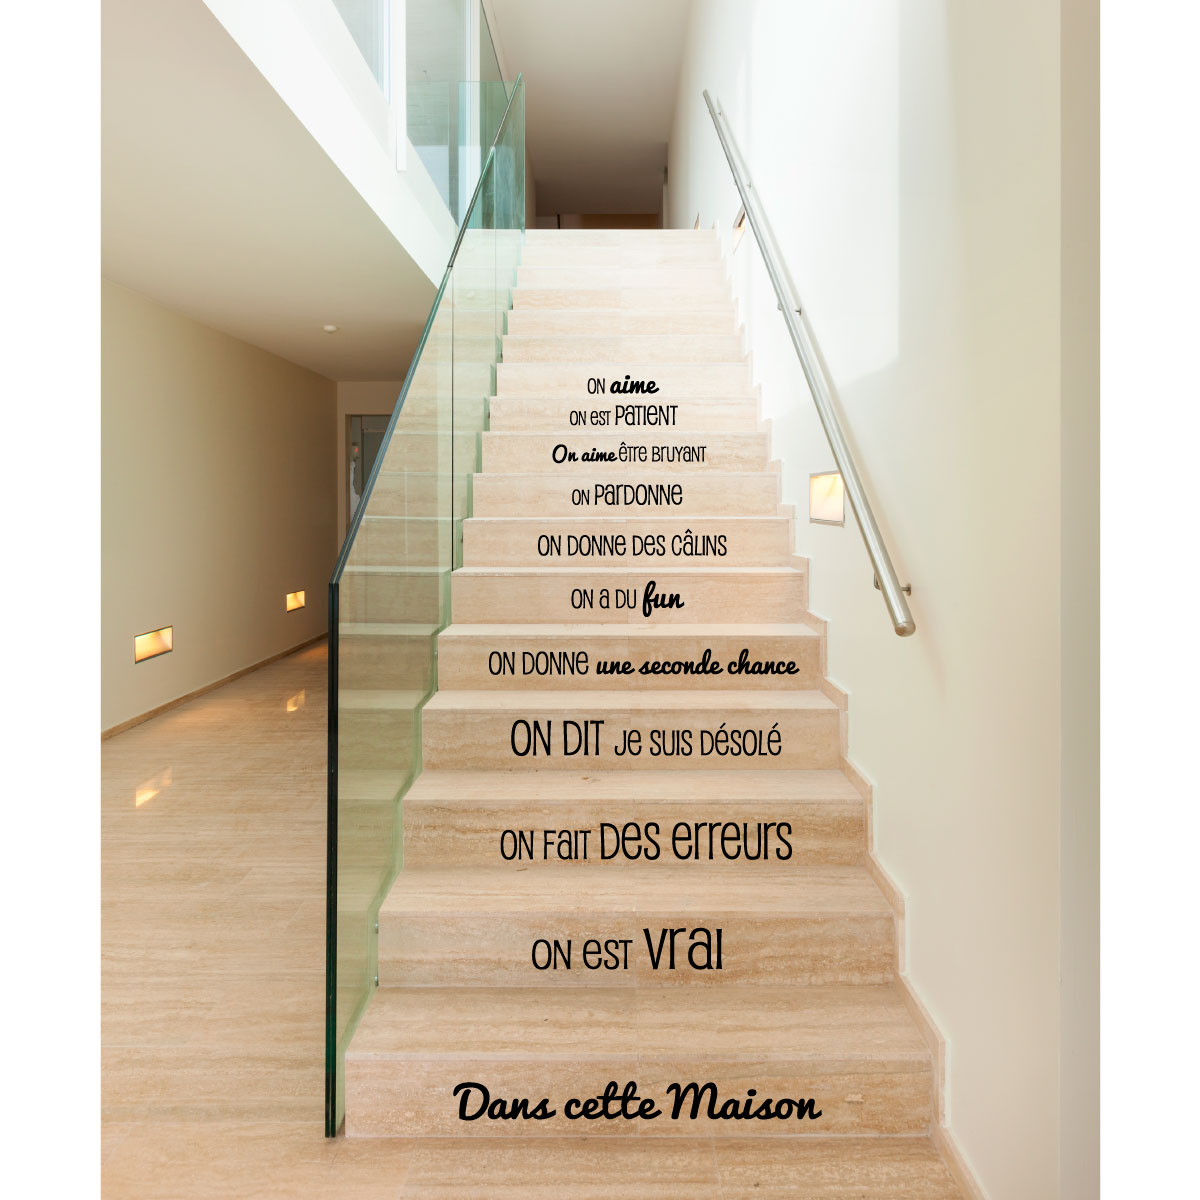 Sticker dans cette maison design stickers citations for Stickers dans cette maison